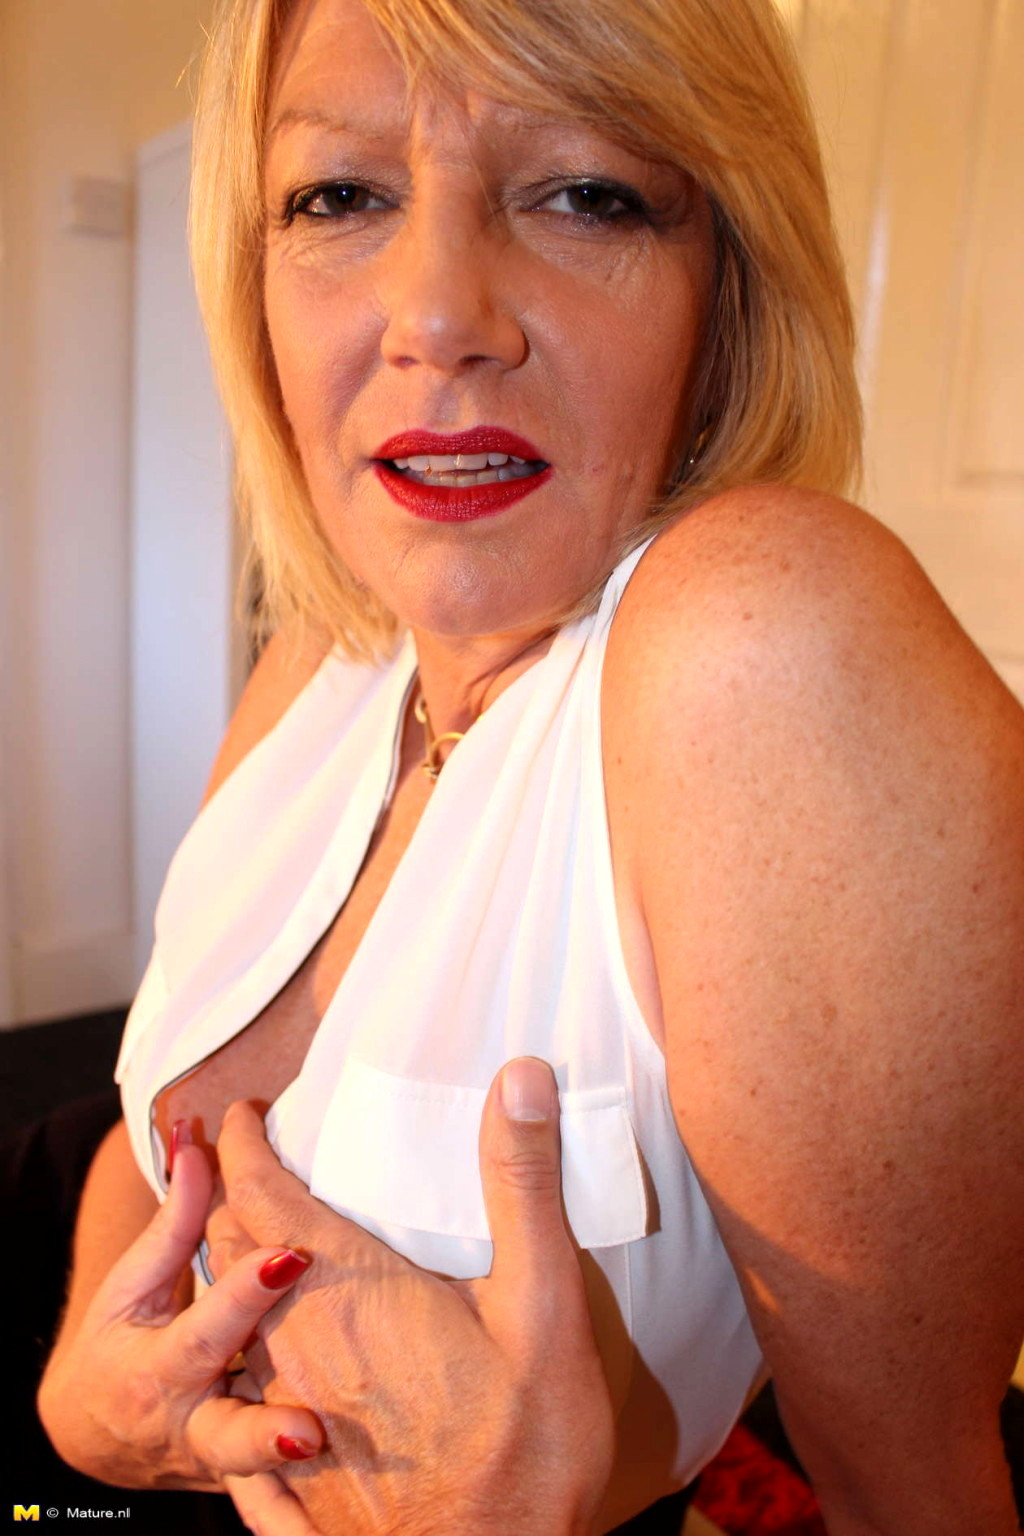 Babe Today Mature Nl Amy Goodhead Hd British Sexmodel Porn -6393